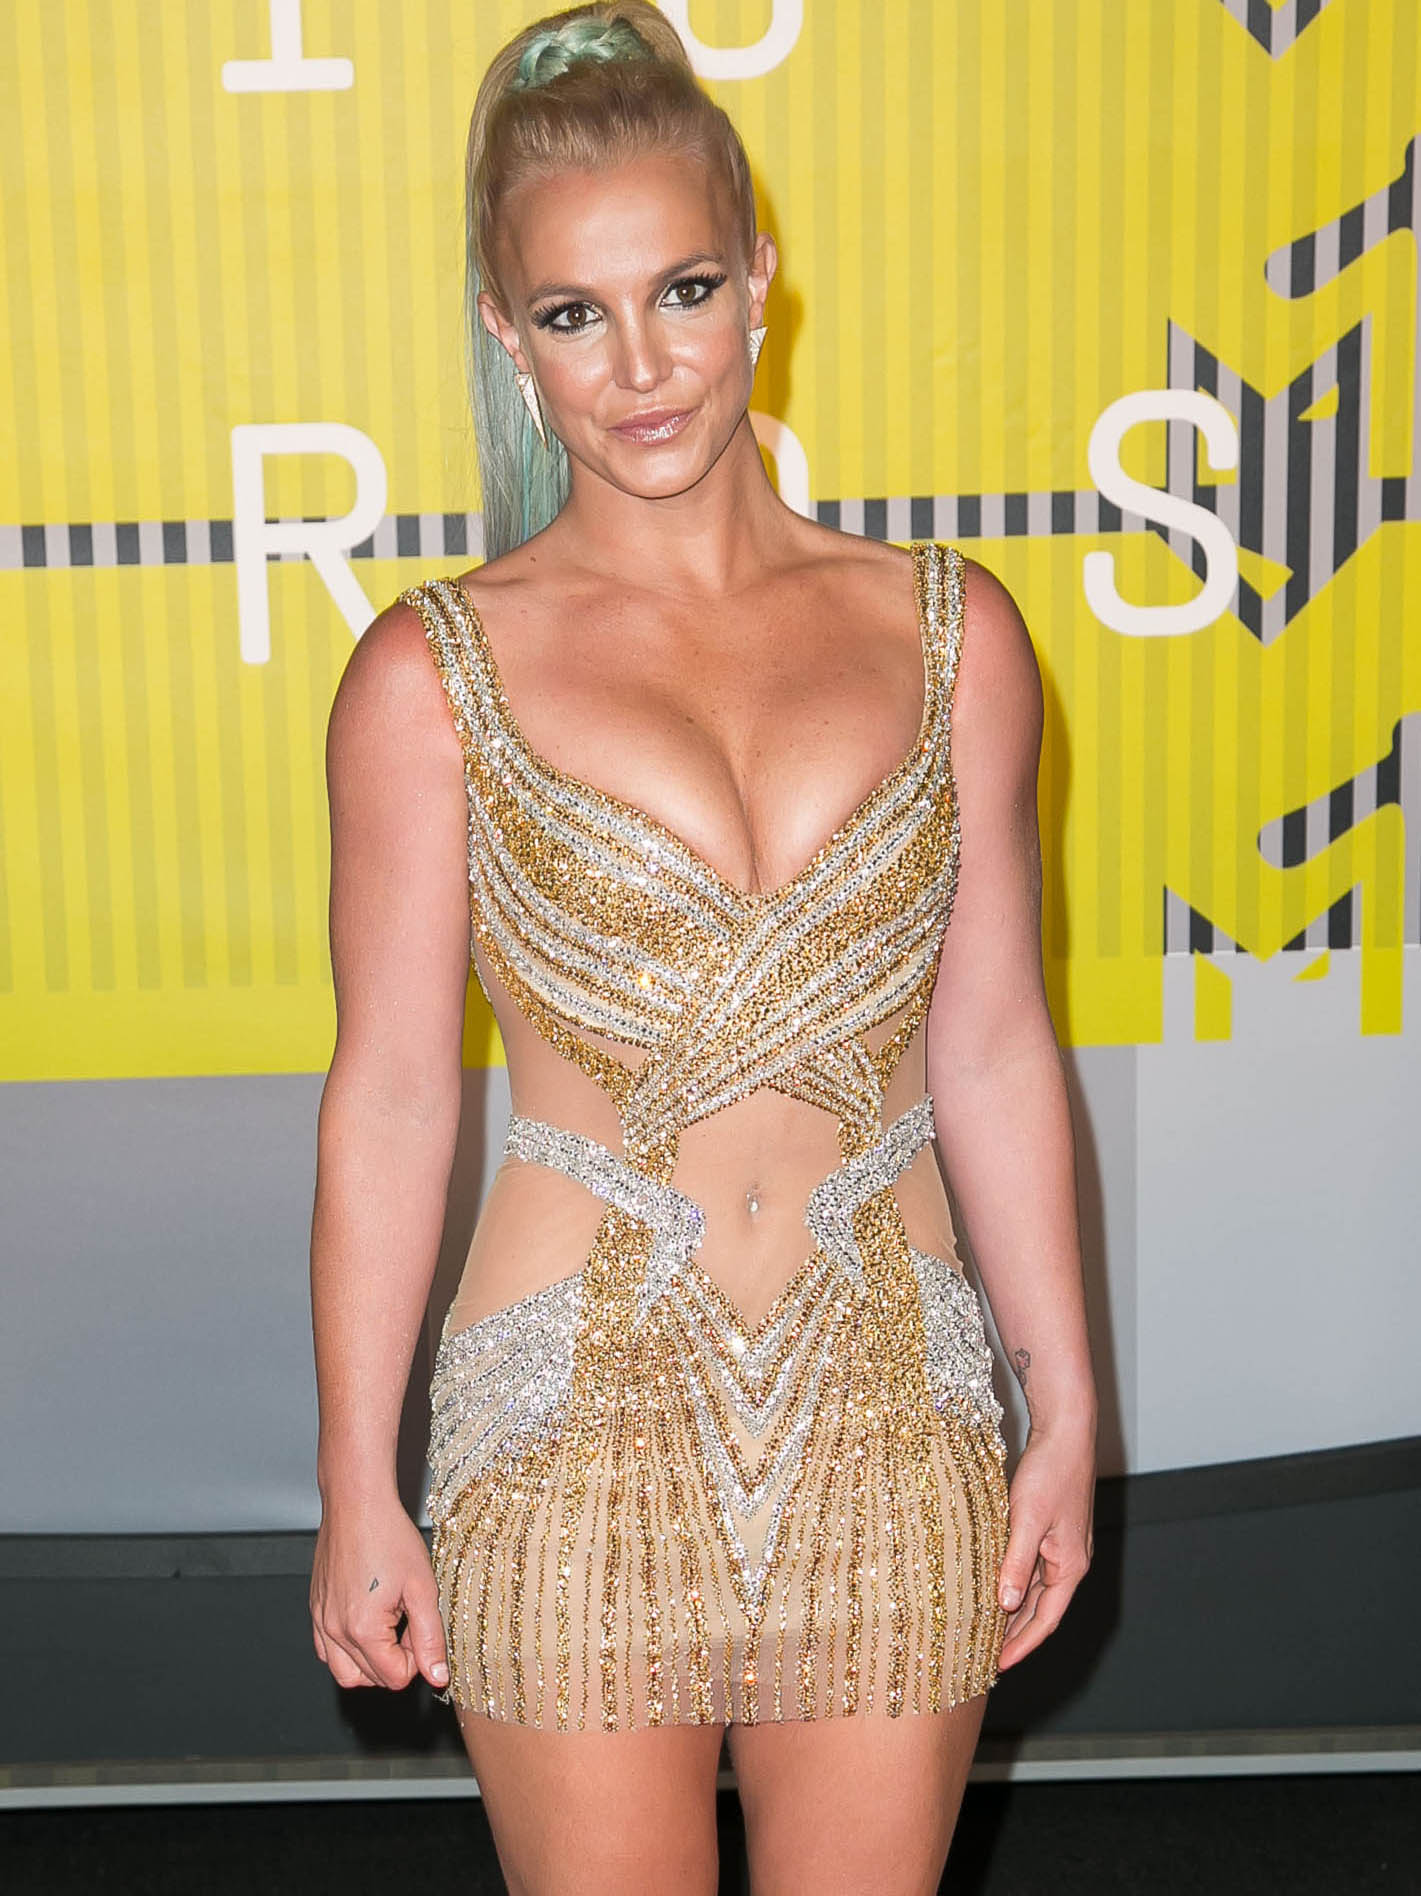 brittany spears essay Lucky by britney spears might be my favourite song,it is really catchy and has such a fun tuneit's totally greatif you like fun music,you should buy this and.